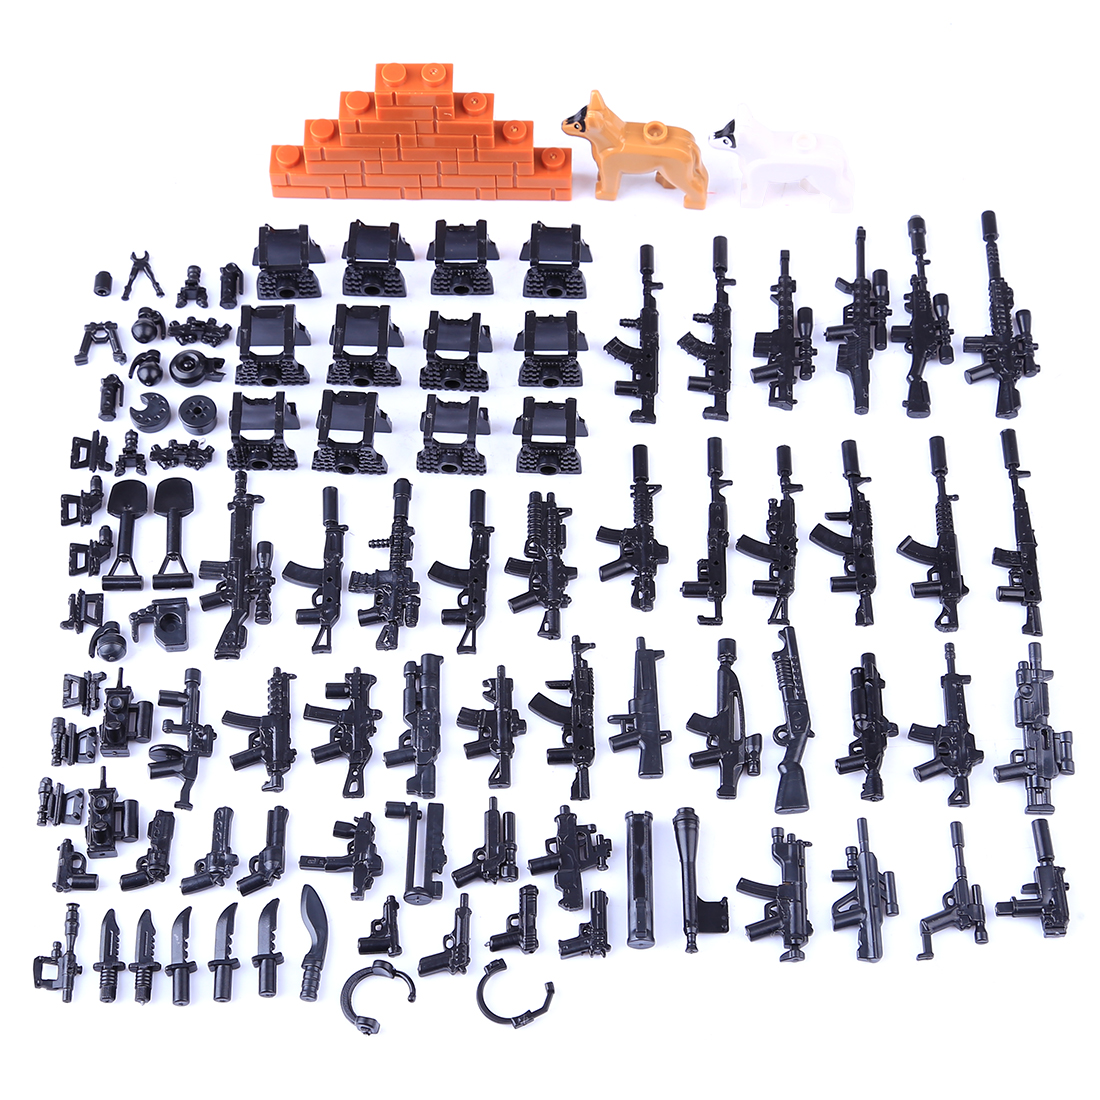 DIY Small Particle Building Block Military Weapon Accessories Toy Set for Children - Modern Special Forces